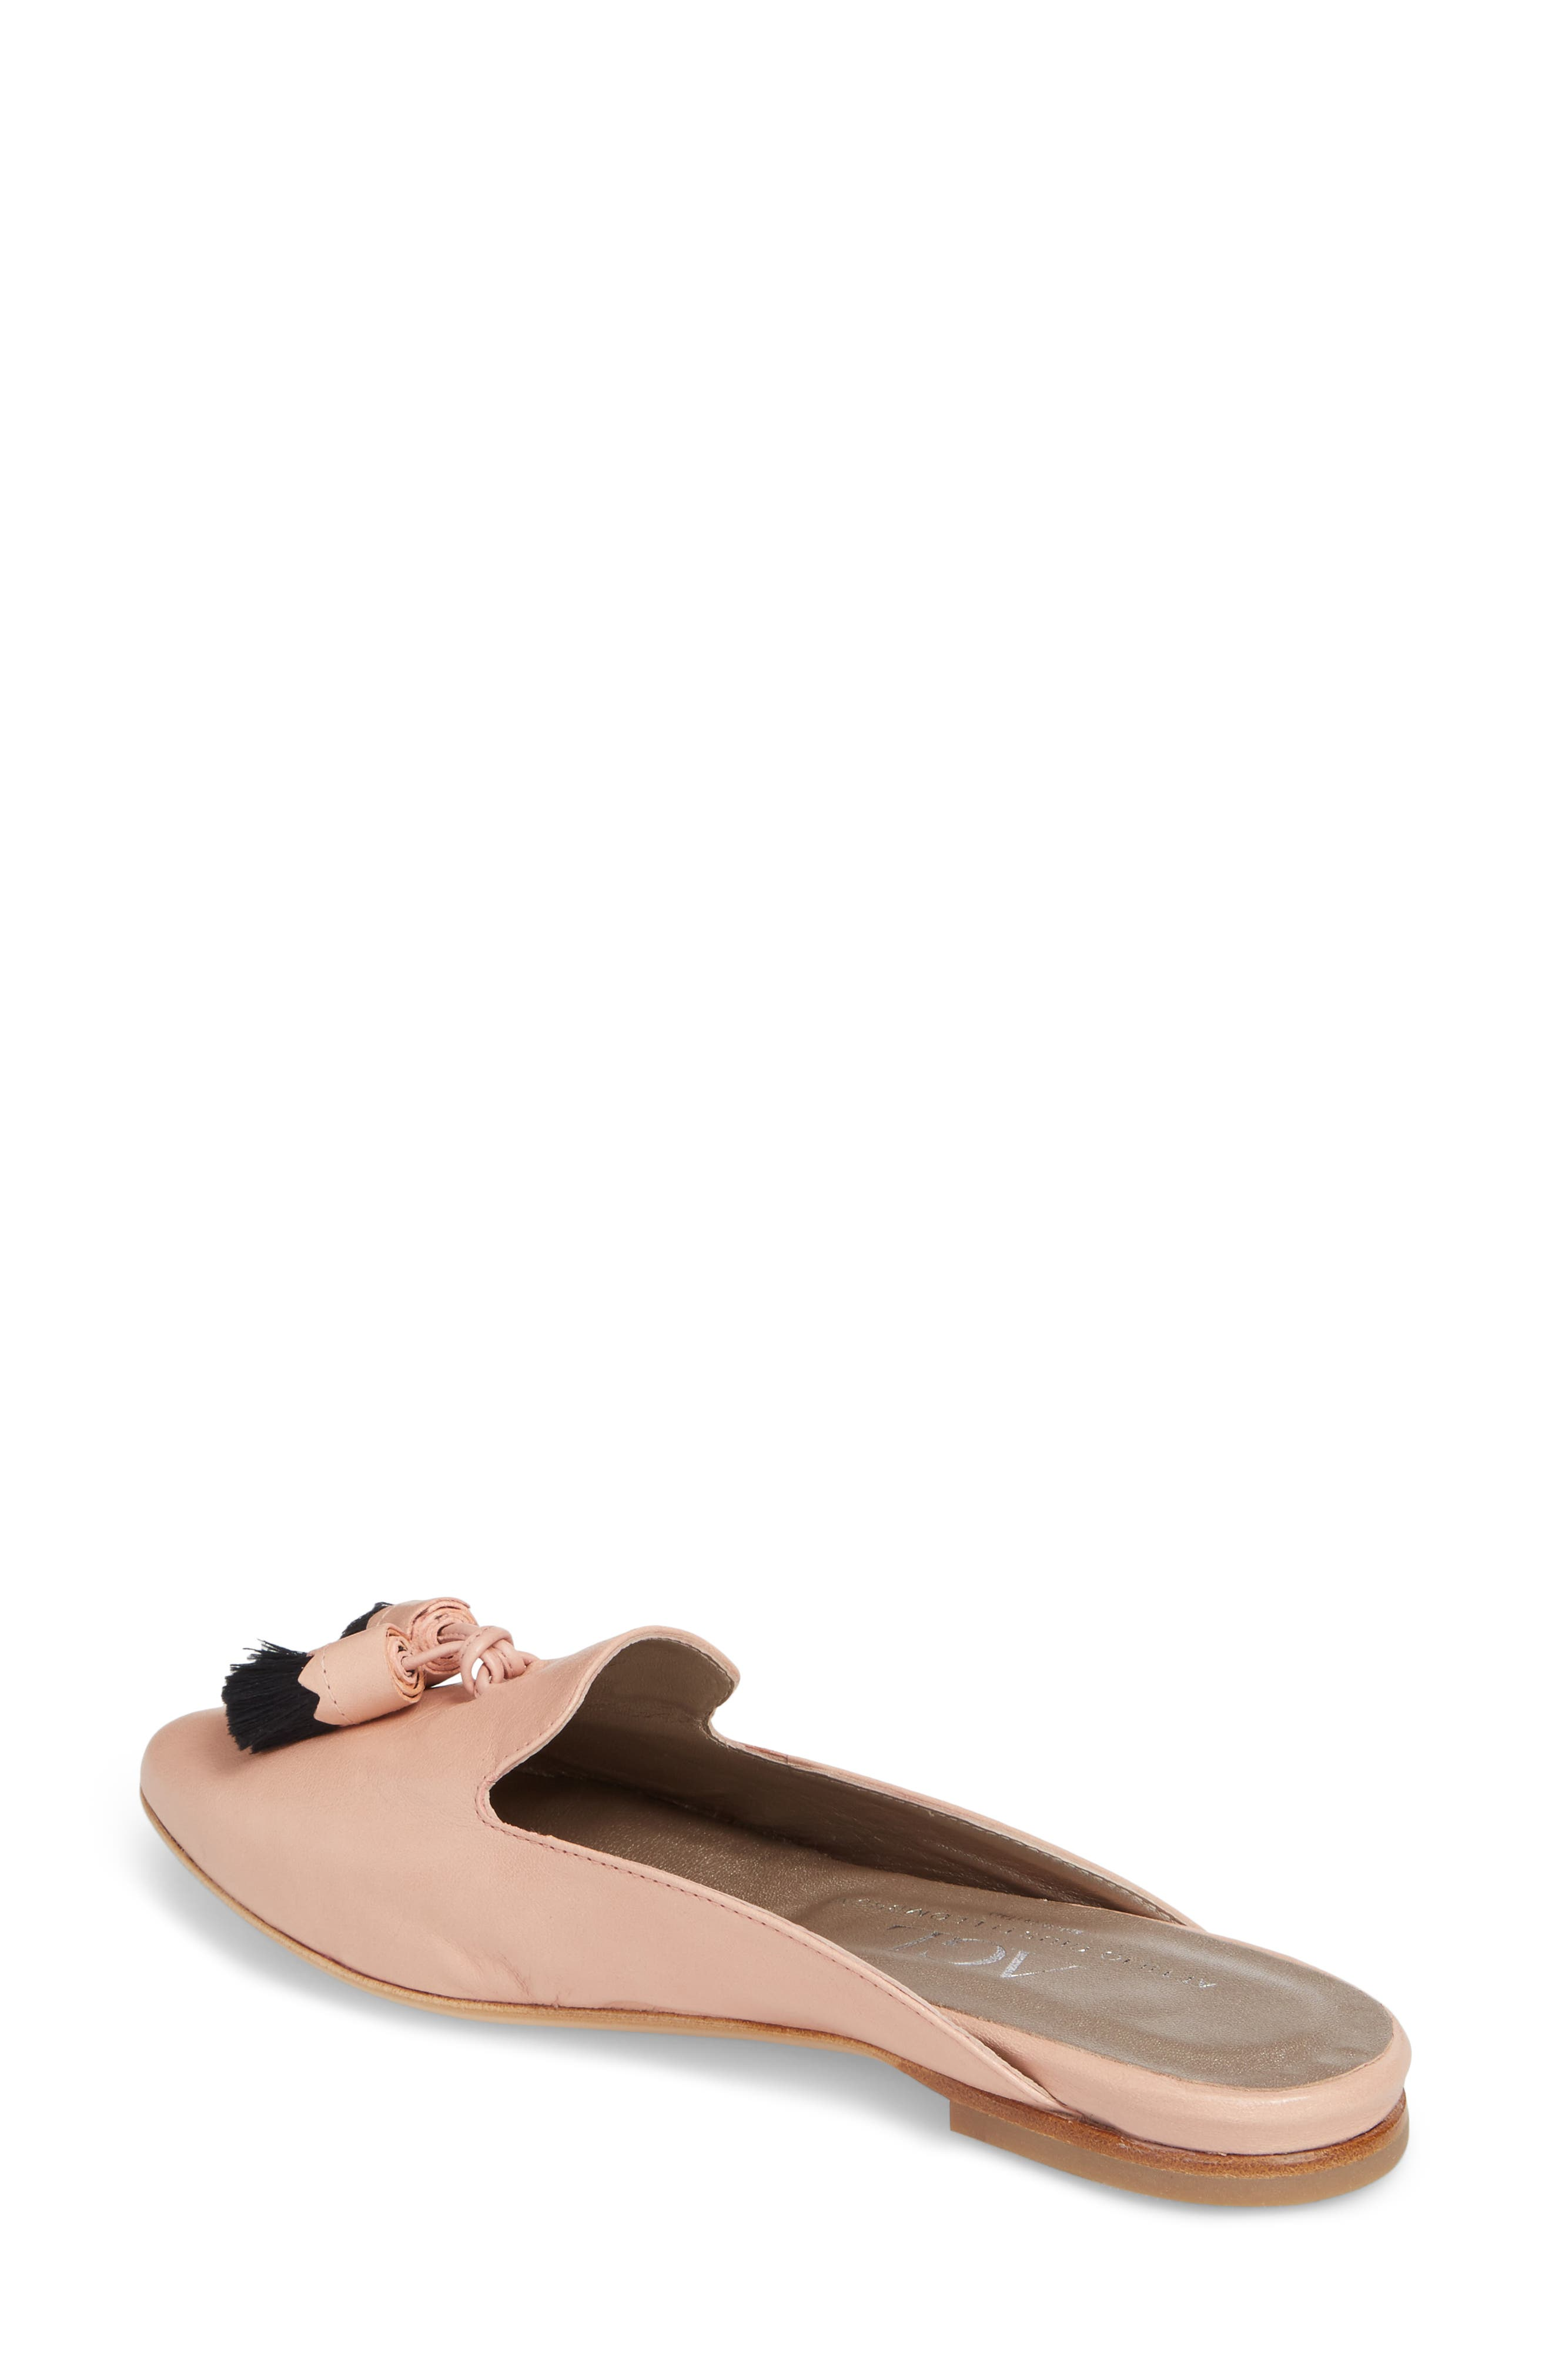 Tassel Loafer Mule,                             Alternate thumbnail 2, color,                             Nude Pink Leather